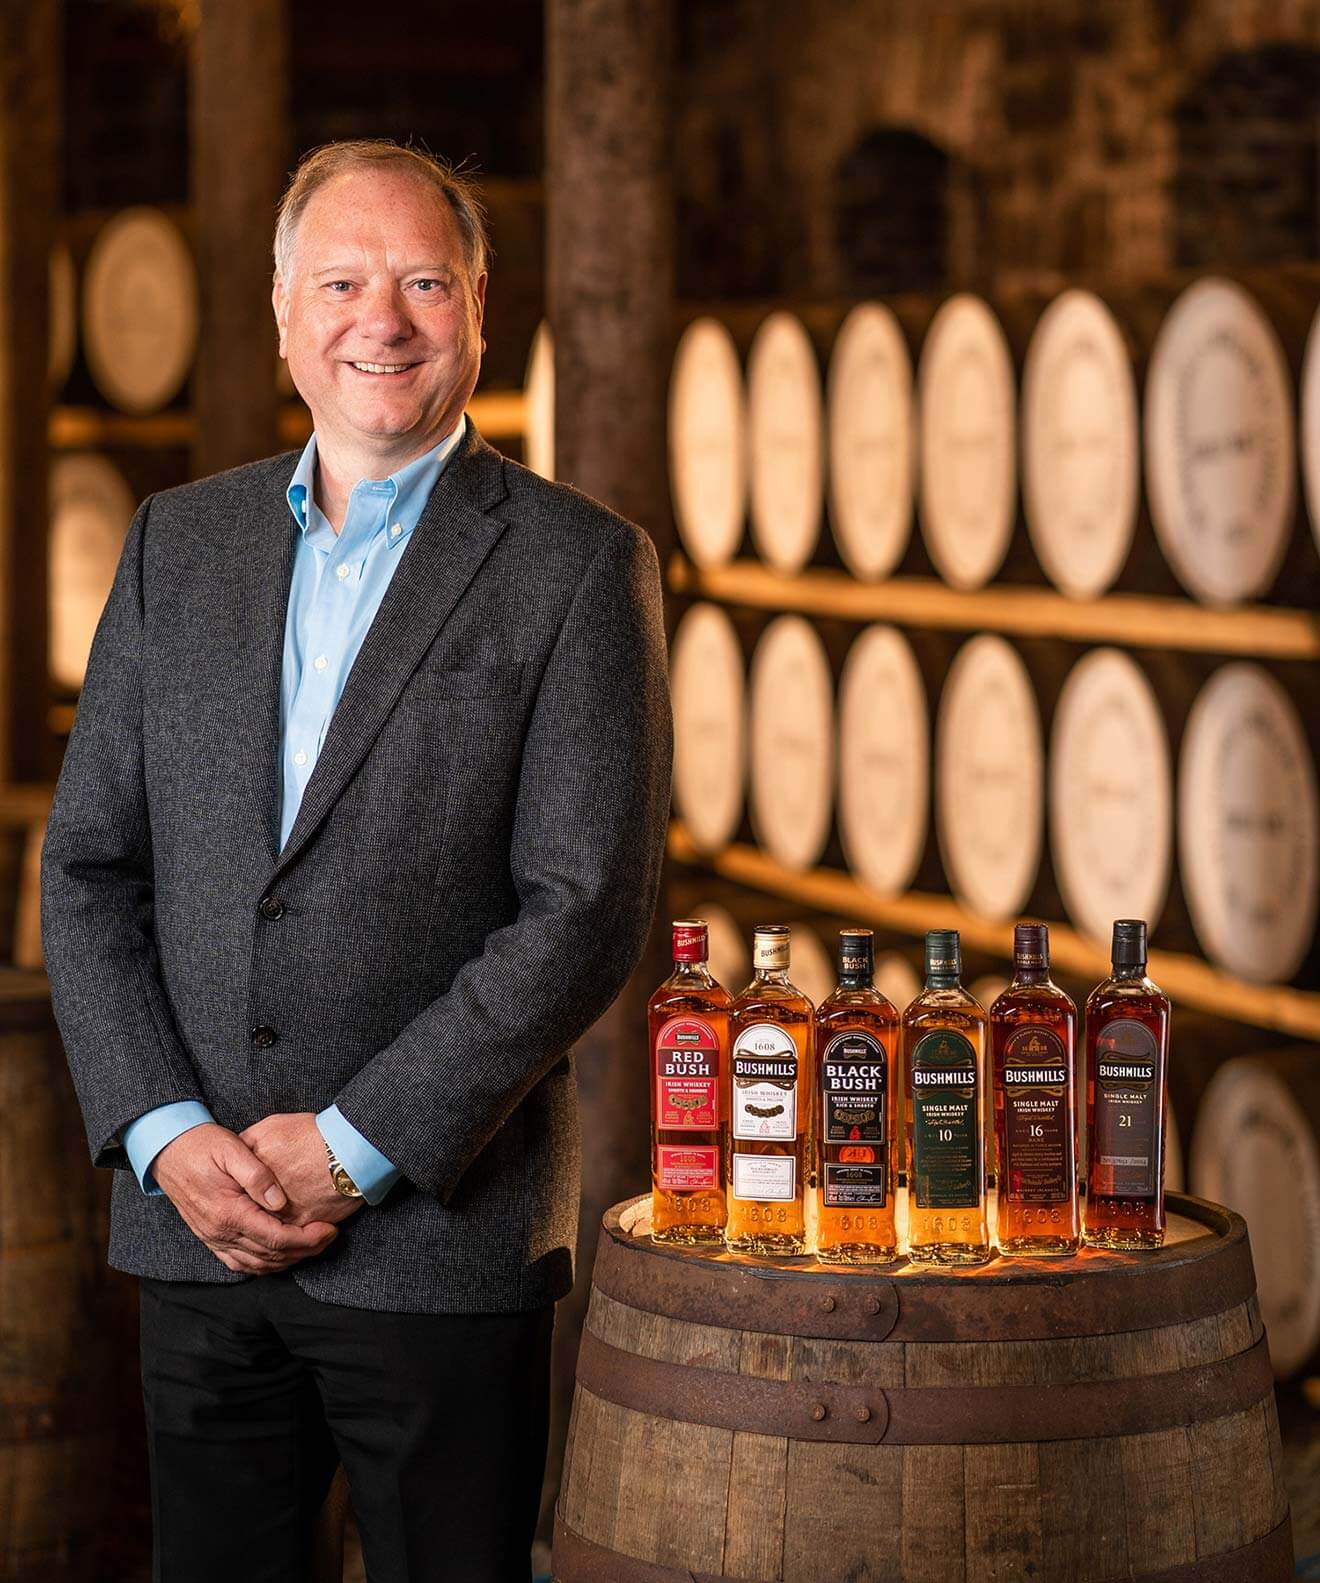 David Gosnell in barrel room with bushmills varieties